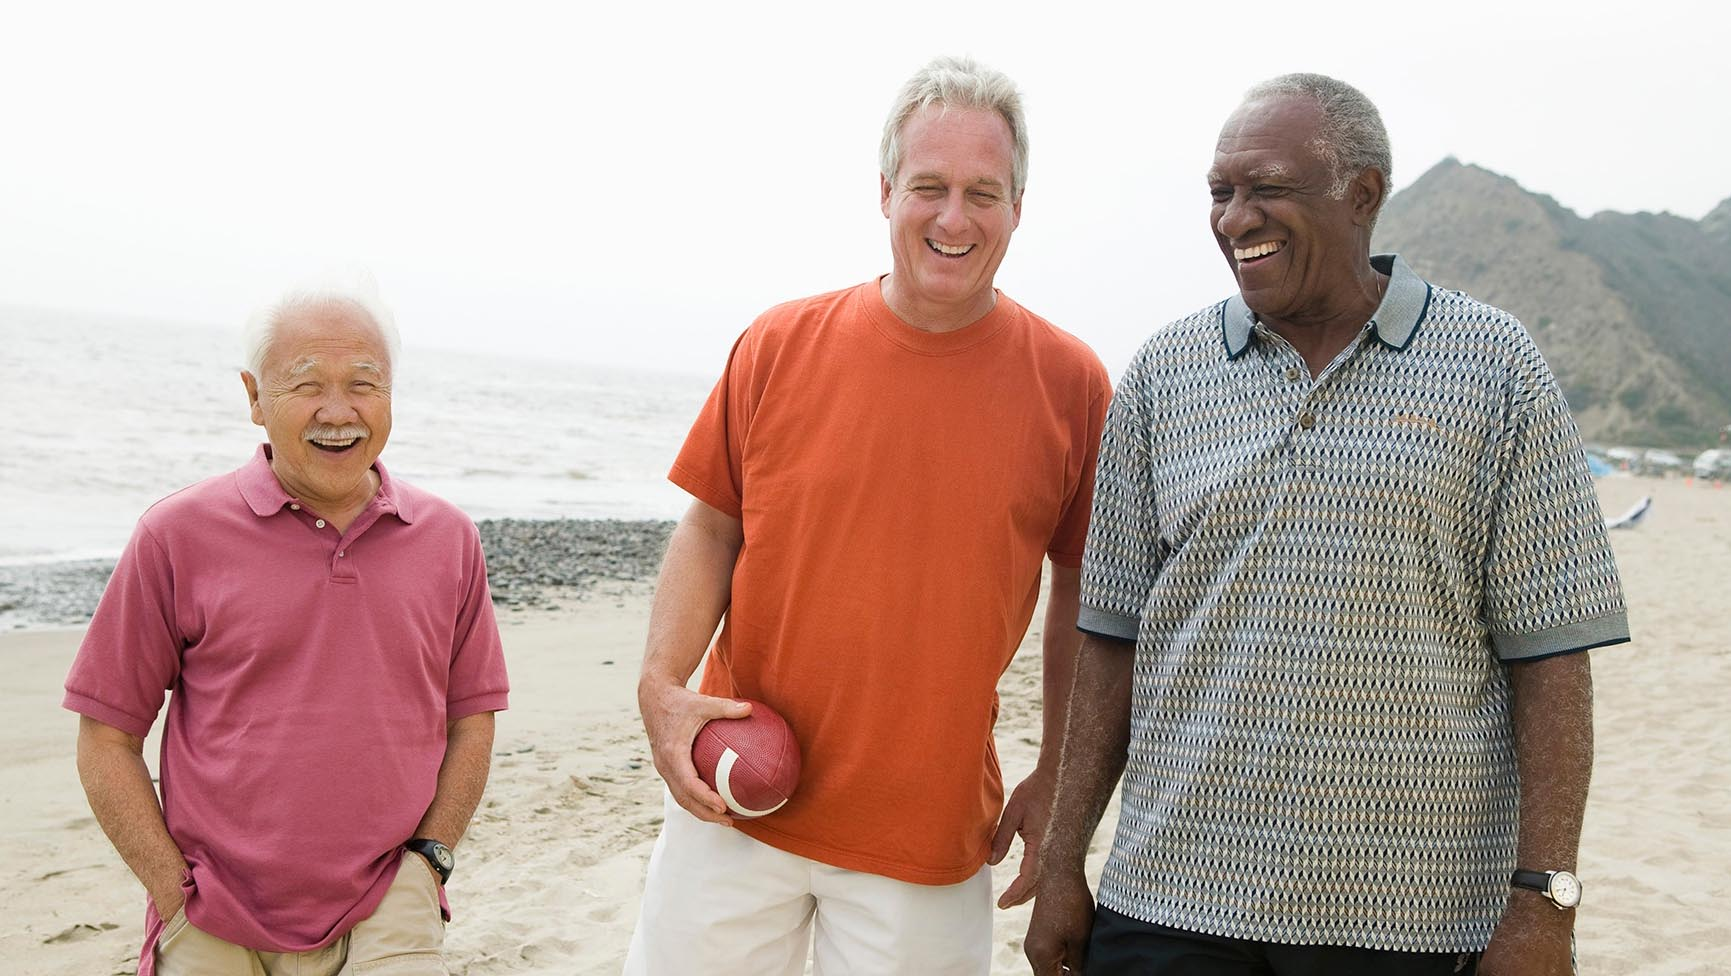 Mature men playing football on the beach